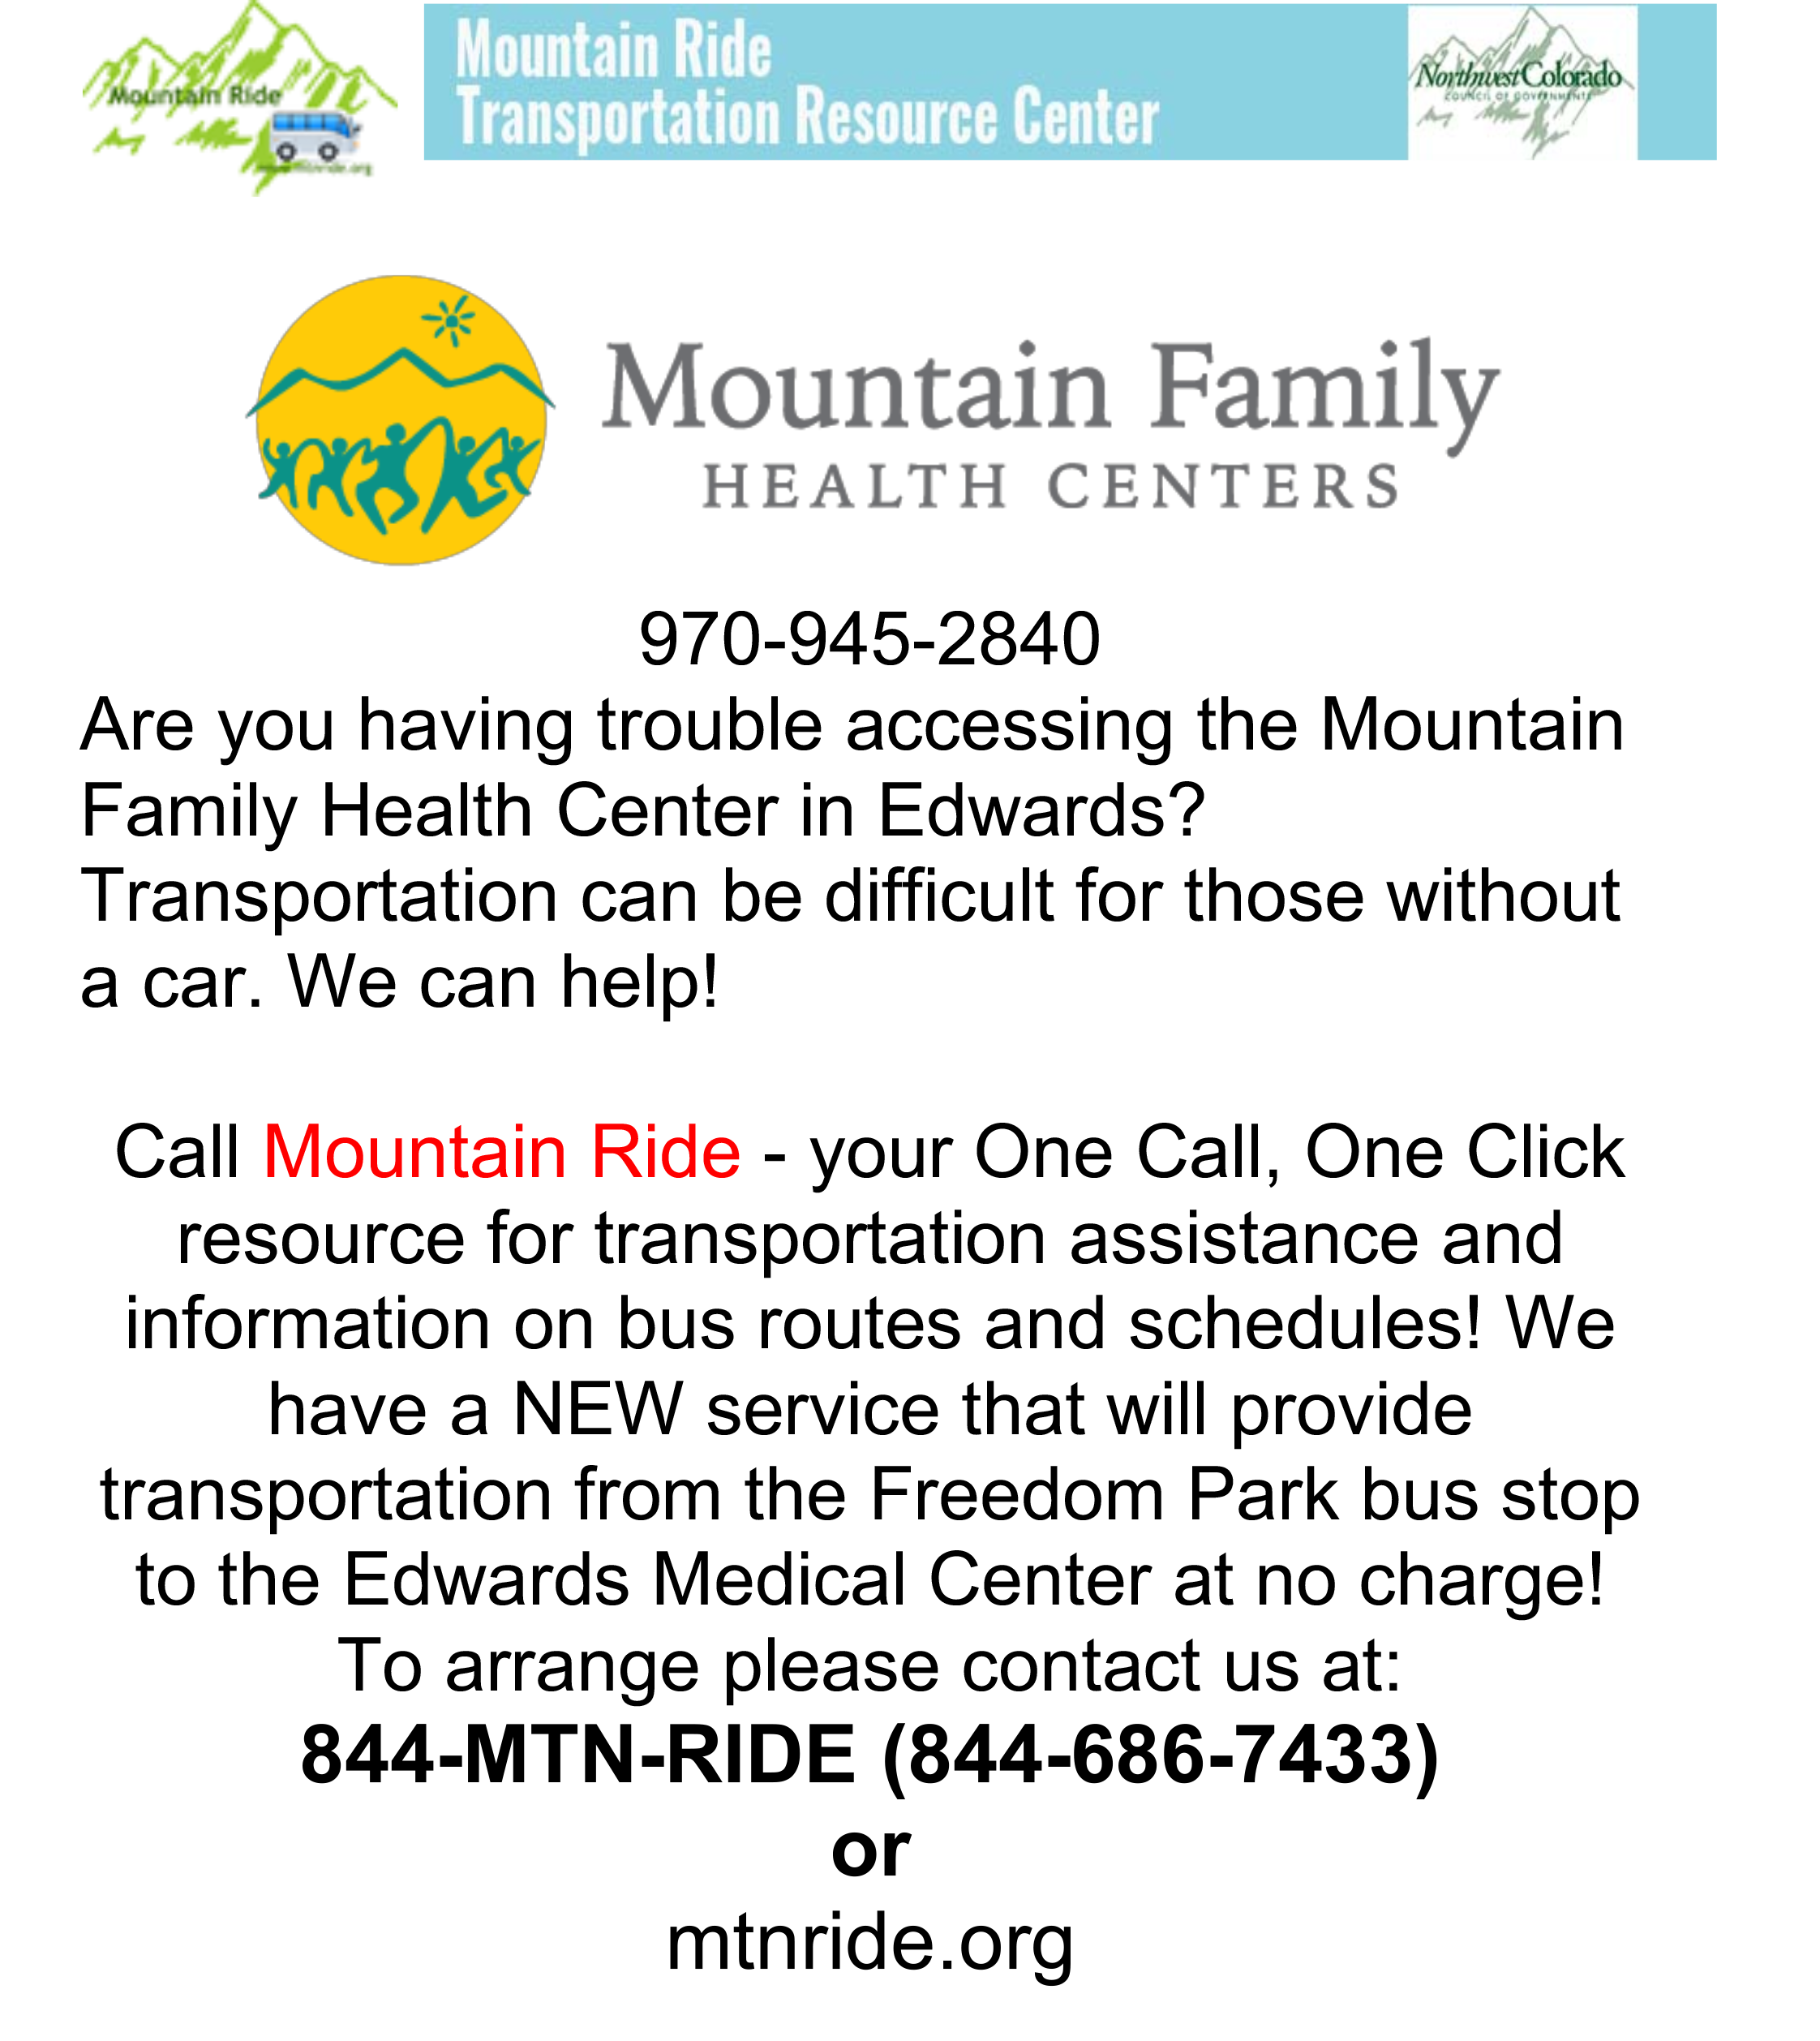 Mountain Ride News - Mountain Ride Transportation Resource